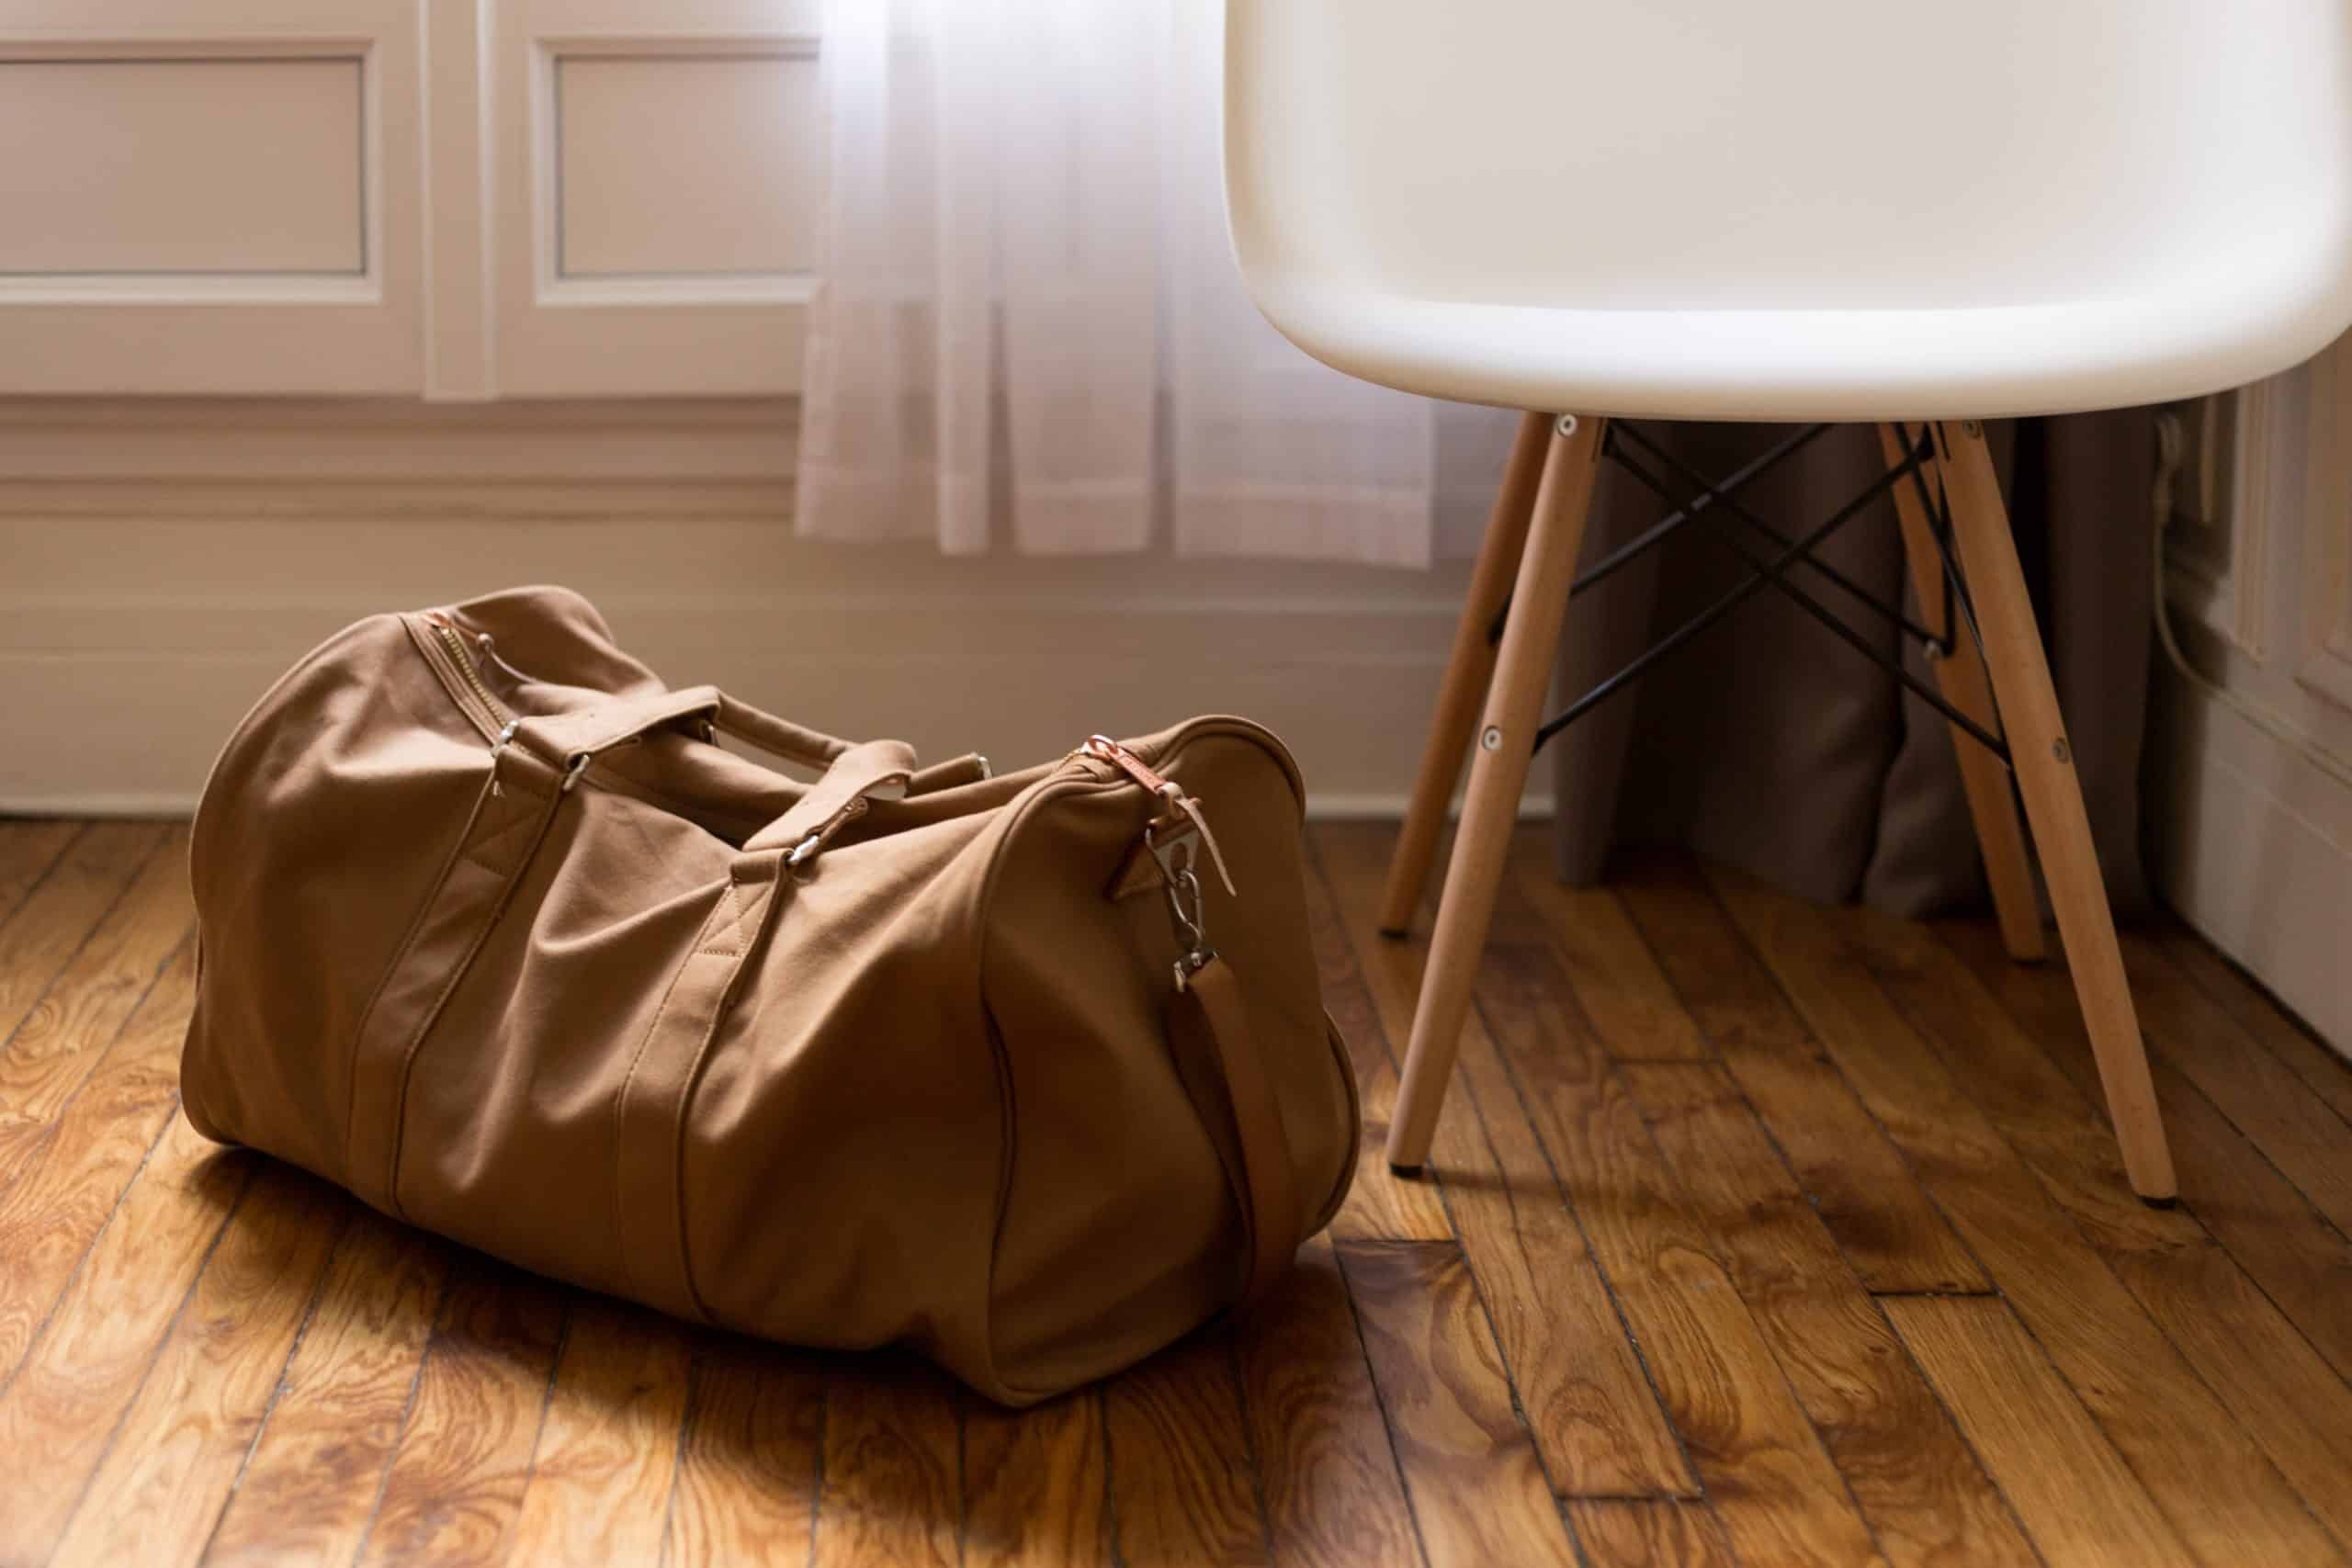 Best Duffel Bag: Ideal For Traveling